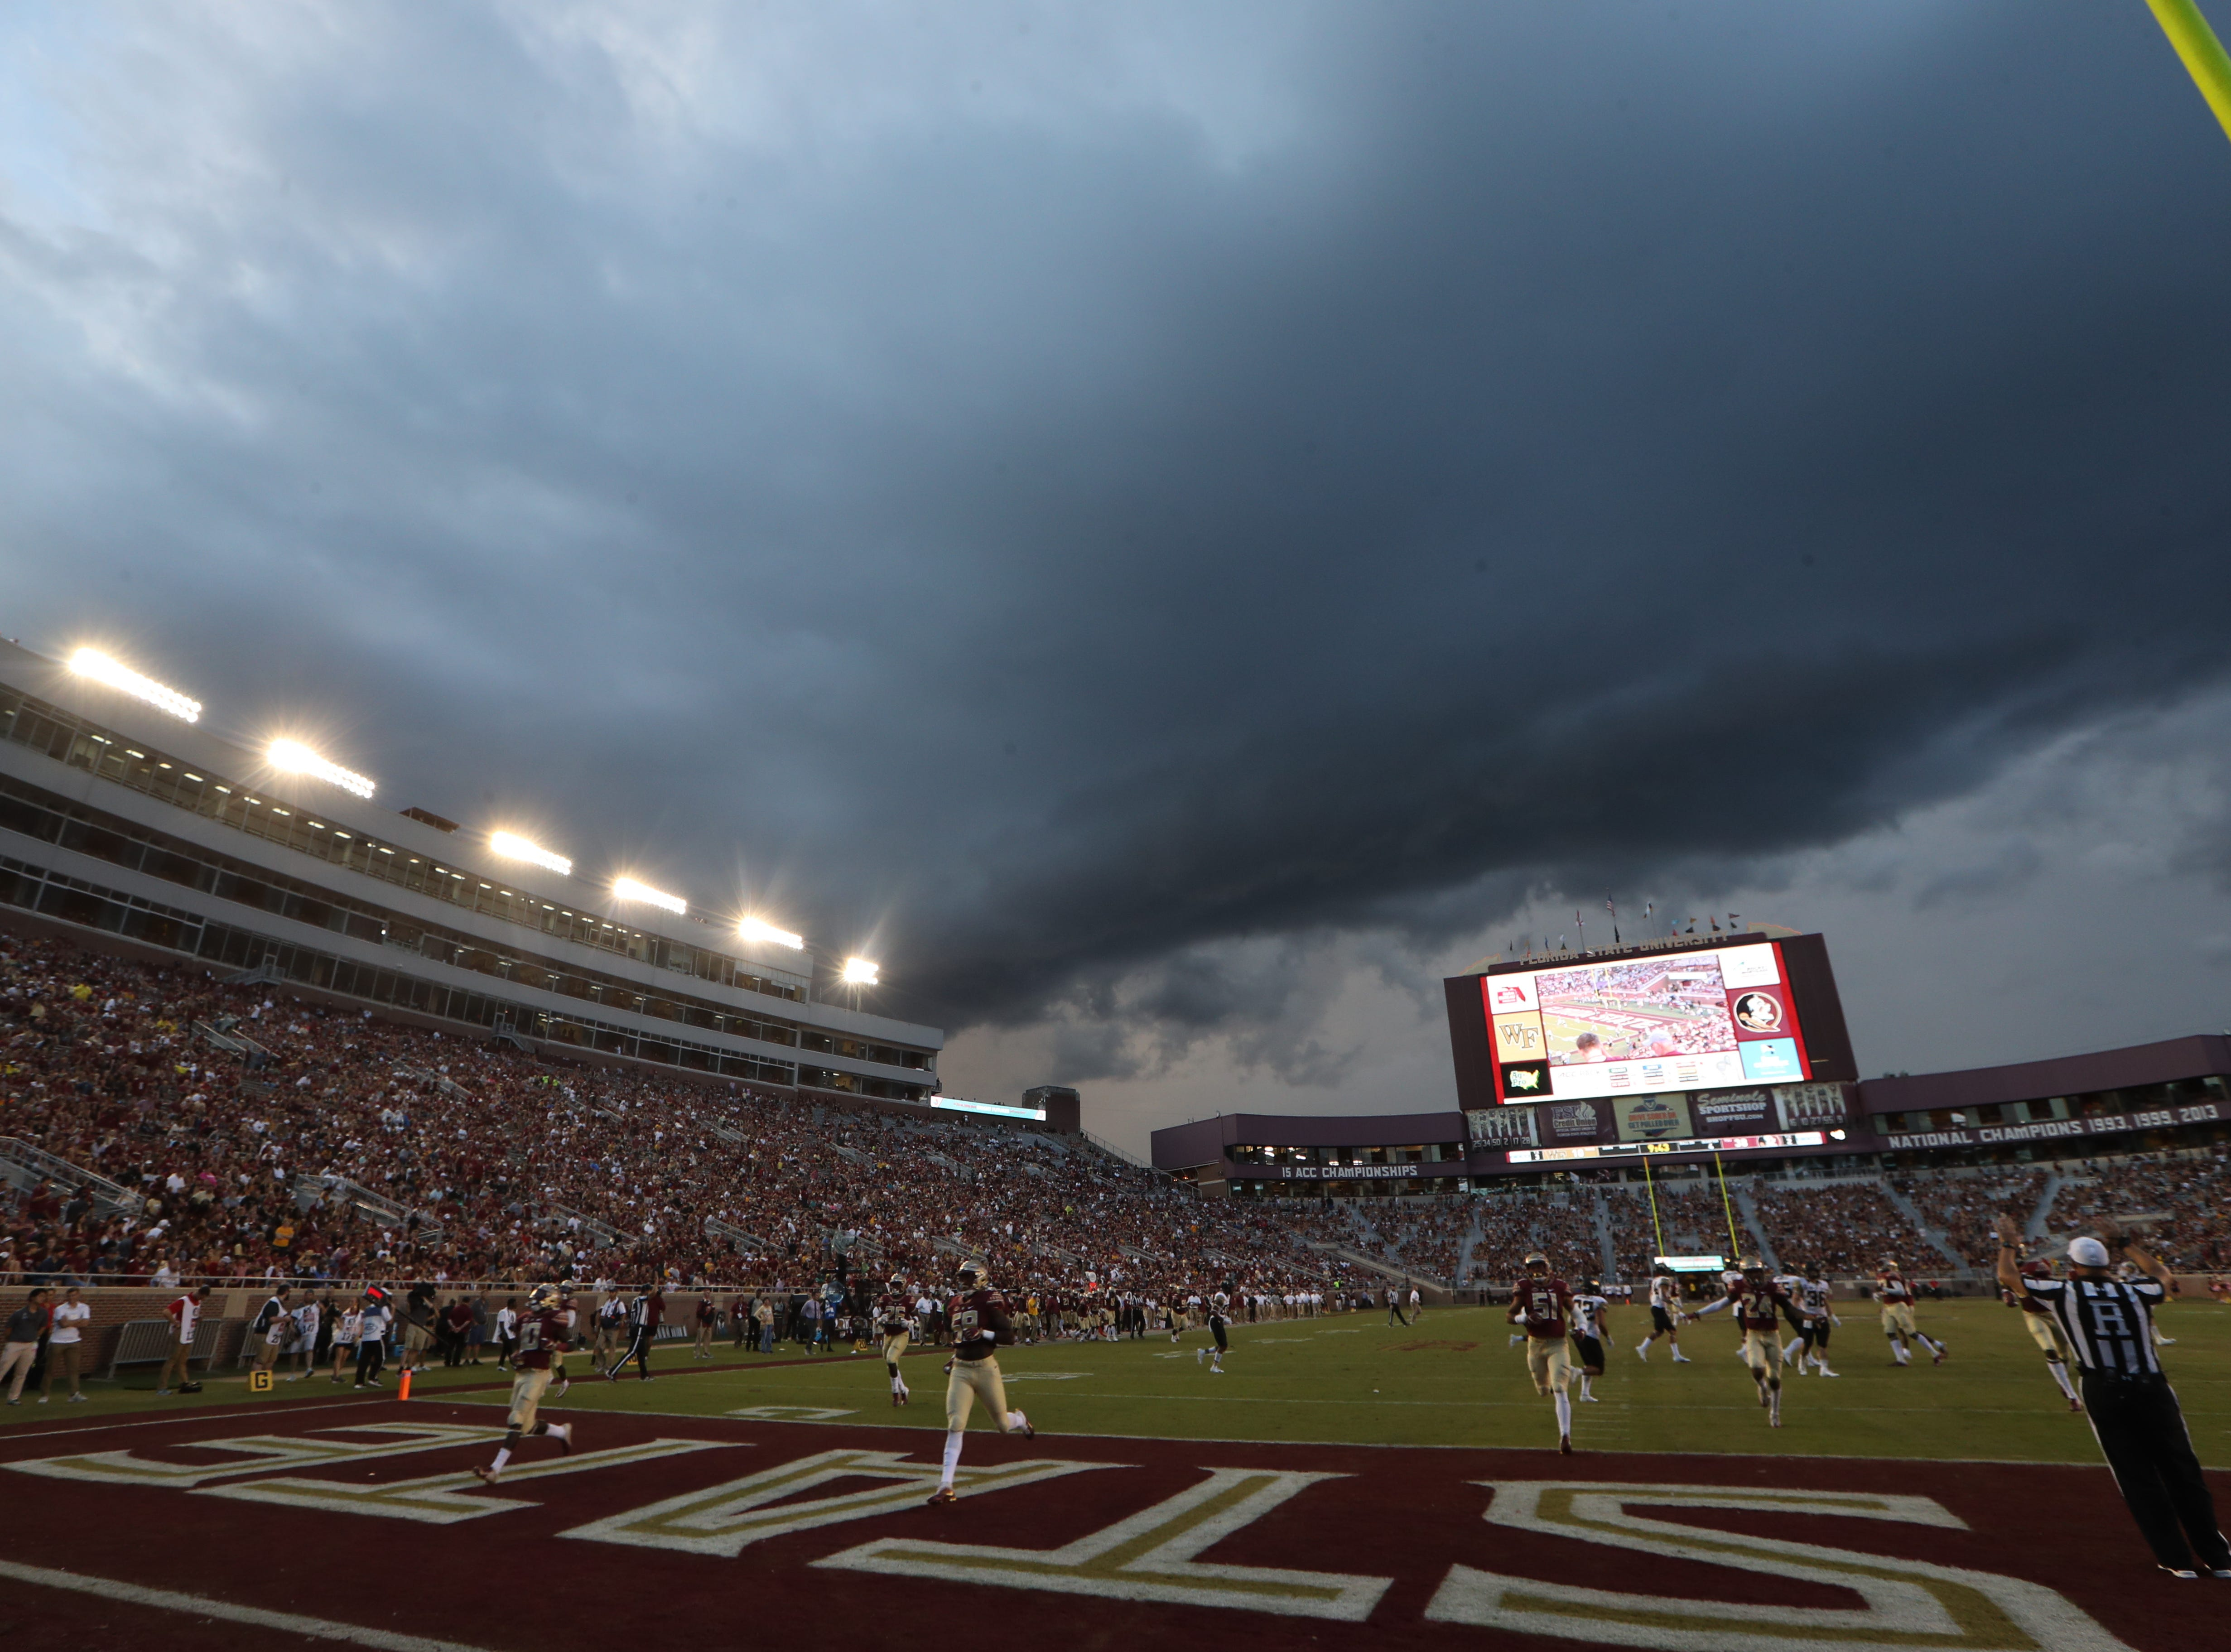 Rain clouds roll in over Doak S. Campbell Stadium during FSU's homecoming game against Wake Forest Saturday, Oct. 20, 2018.